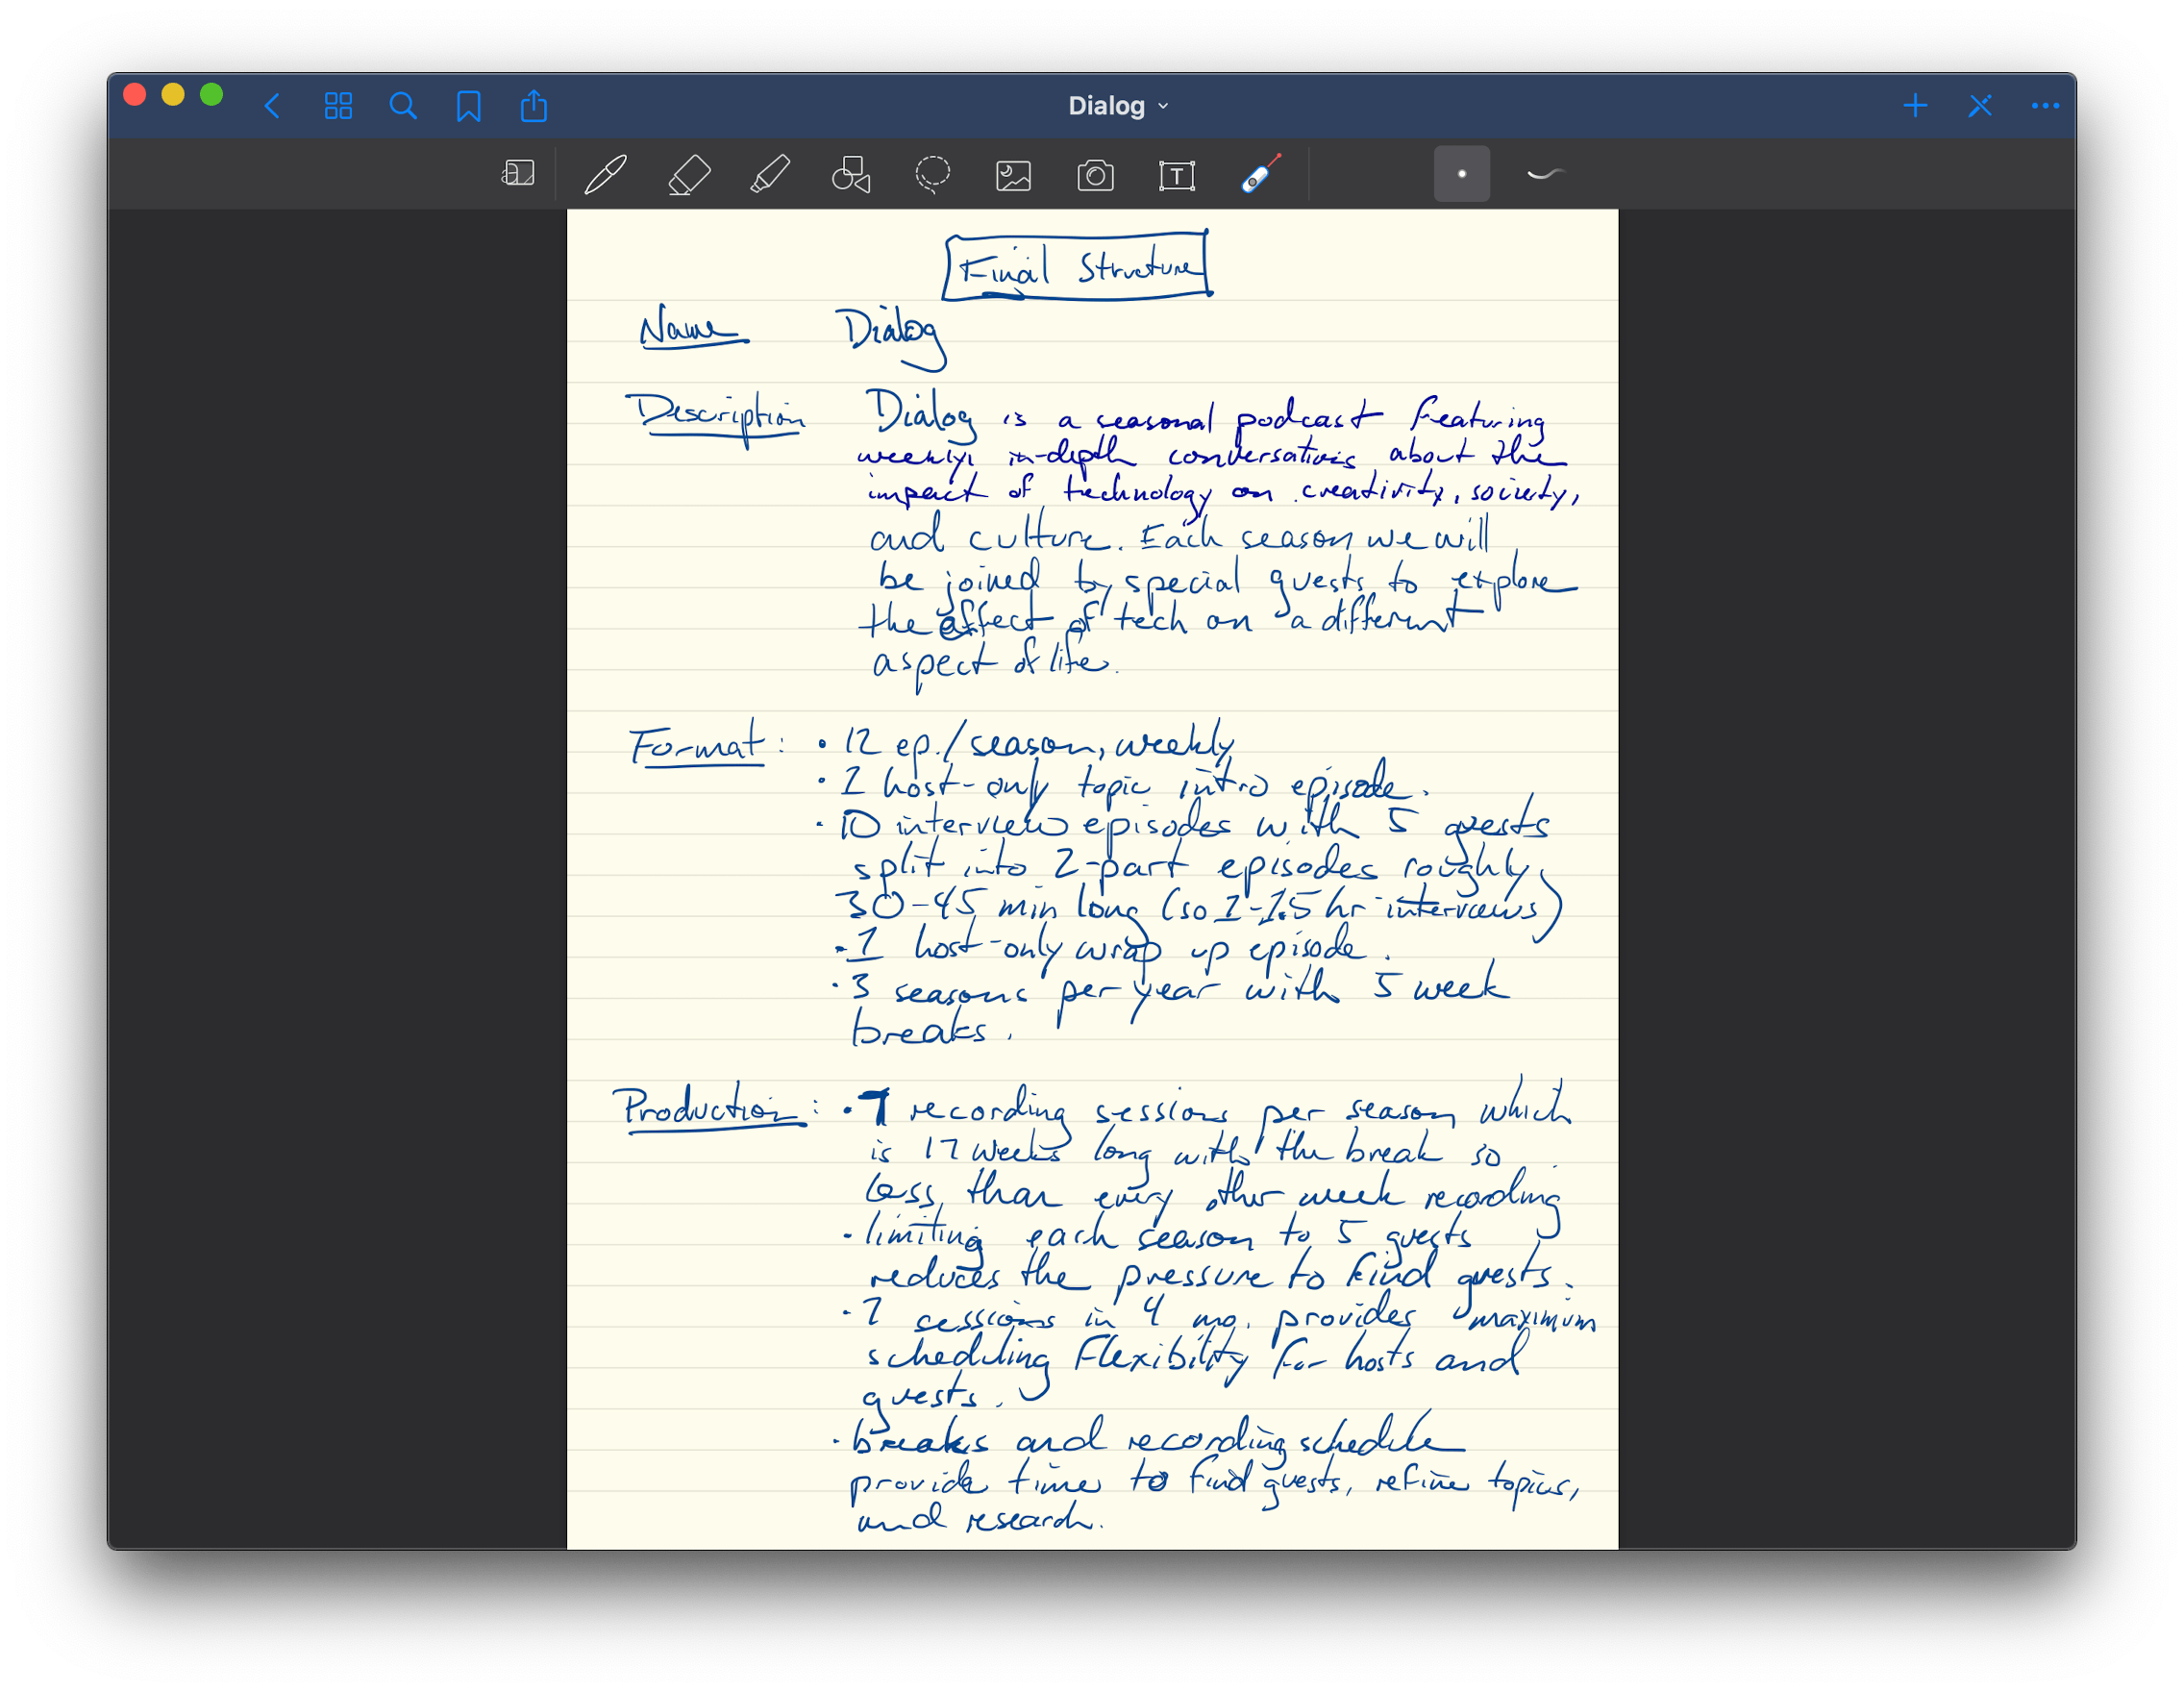 Referencing a page of notes from my Mac.